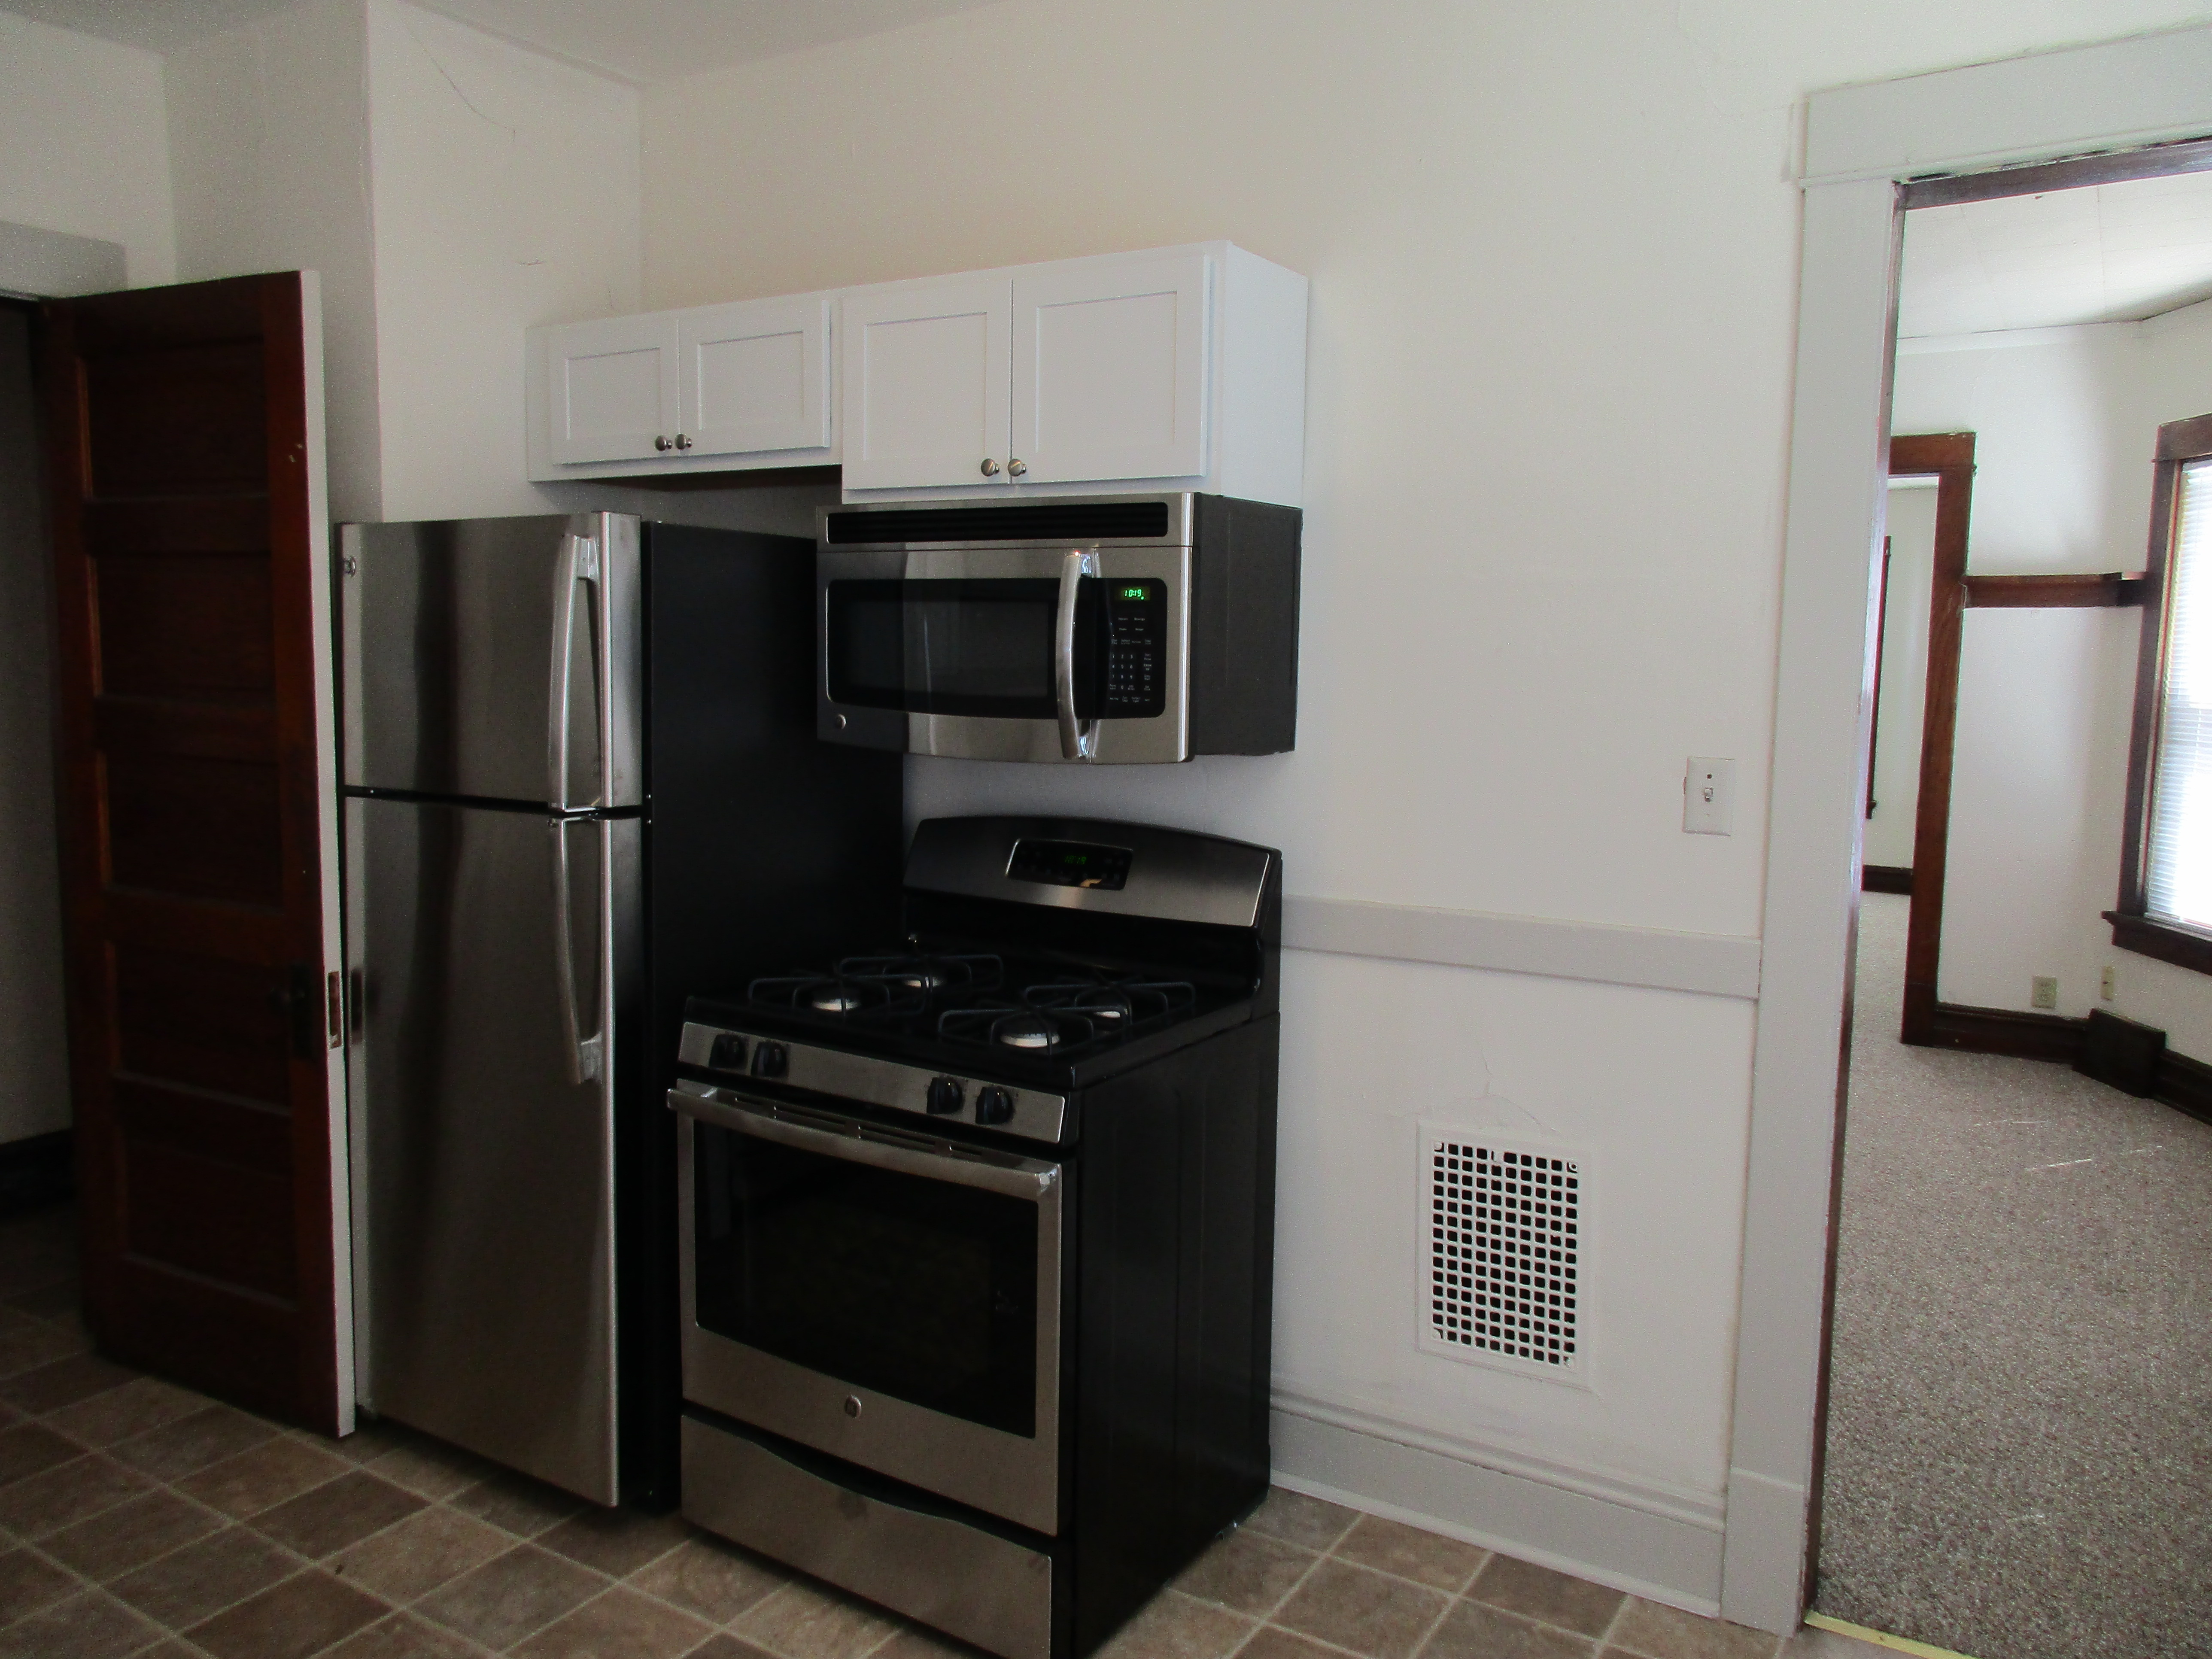 Apartments Near Edgewood 120-128 N Orchard Street for Edgewood College Students in Madison, WI